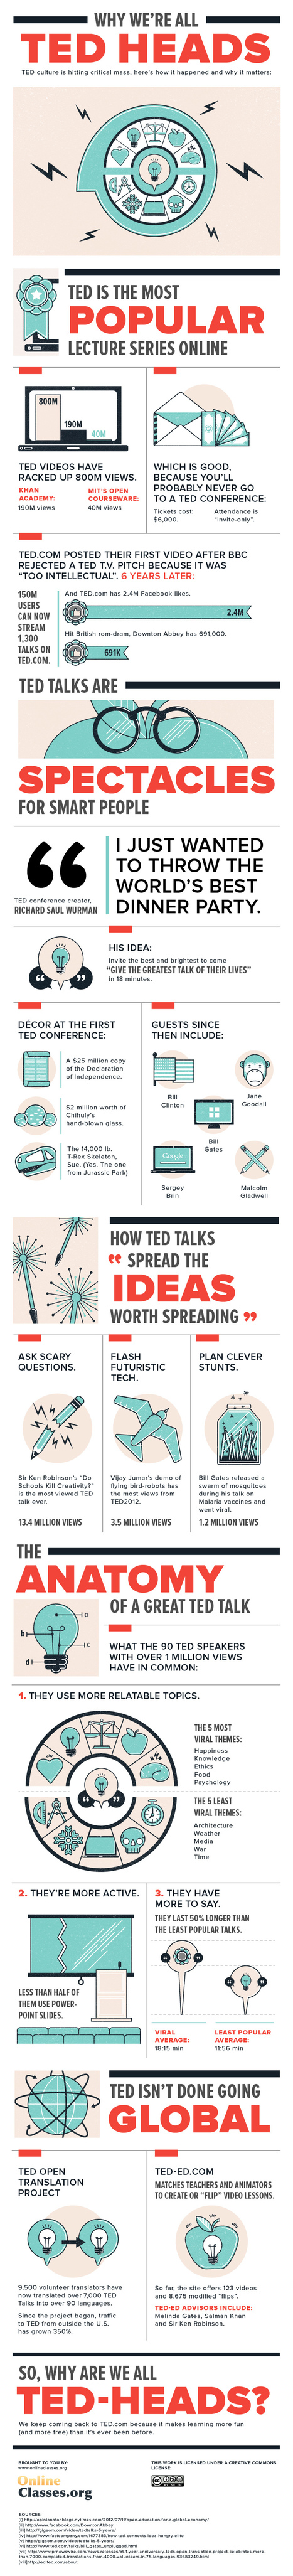 TED: The Greatest Platform Worth Sharing | Online Marketing with Tech | Scoop.it